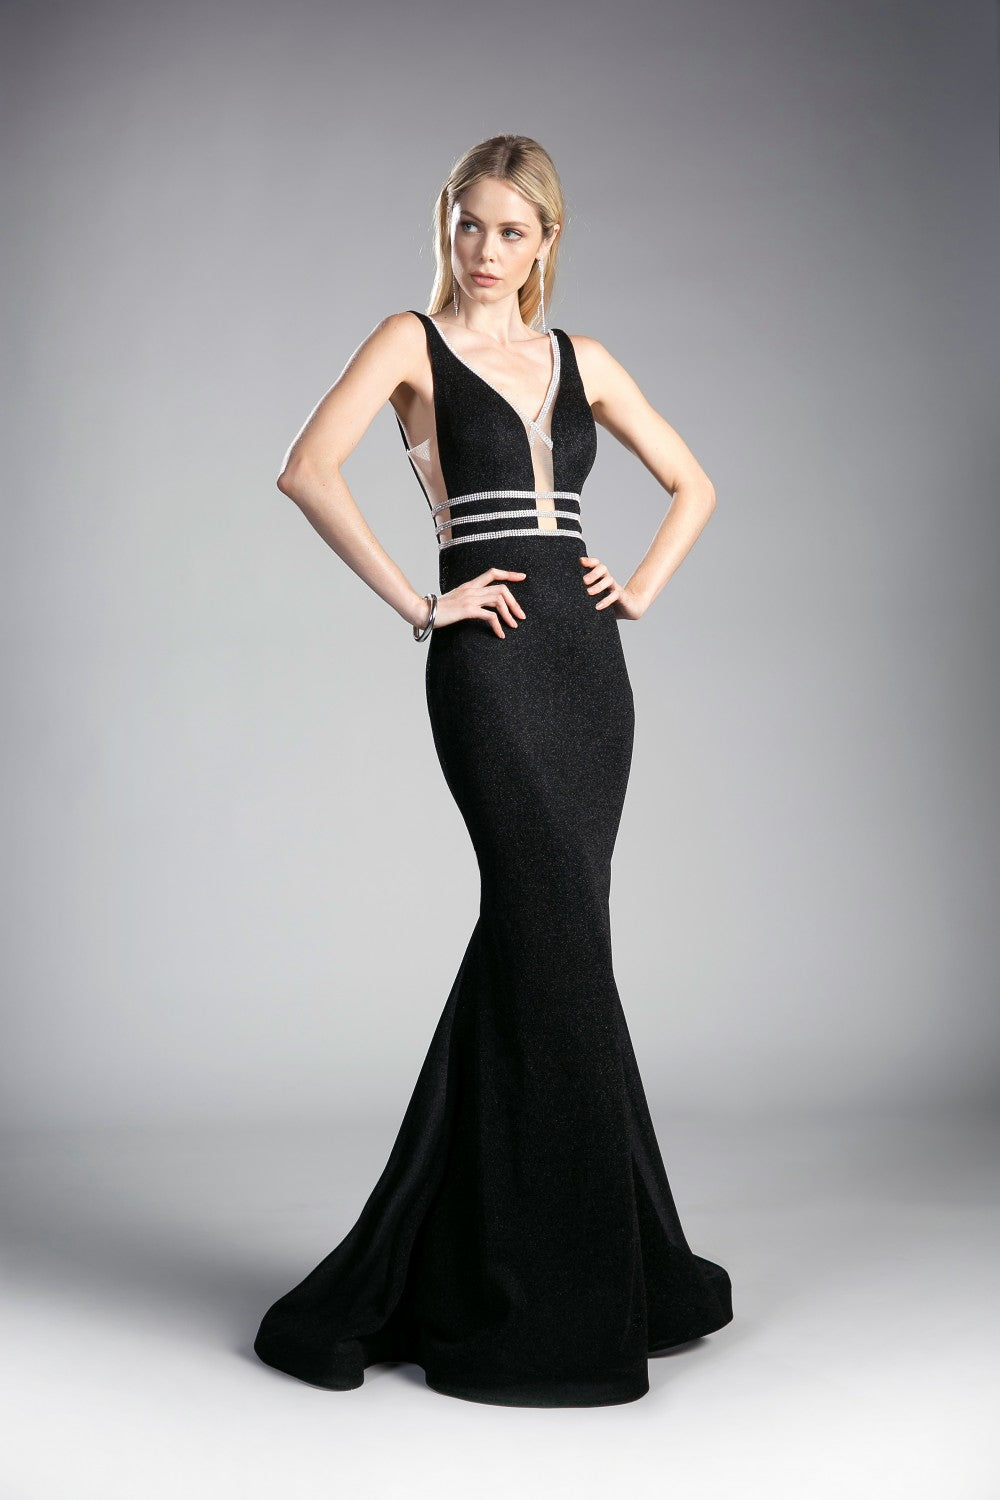 Fitted Metallic Gown With Beaded Belts And Low Open Back